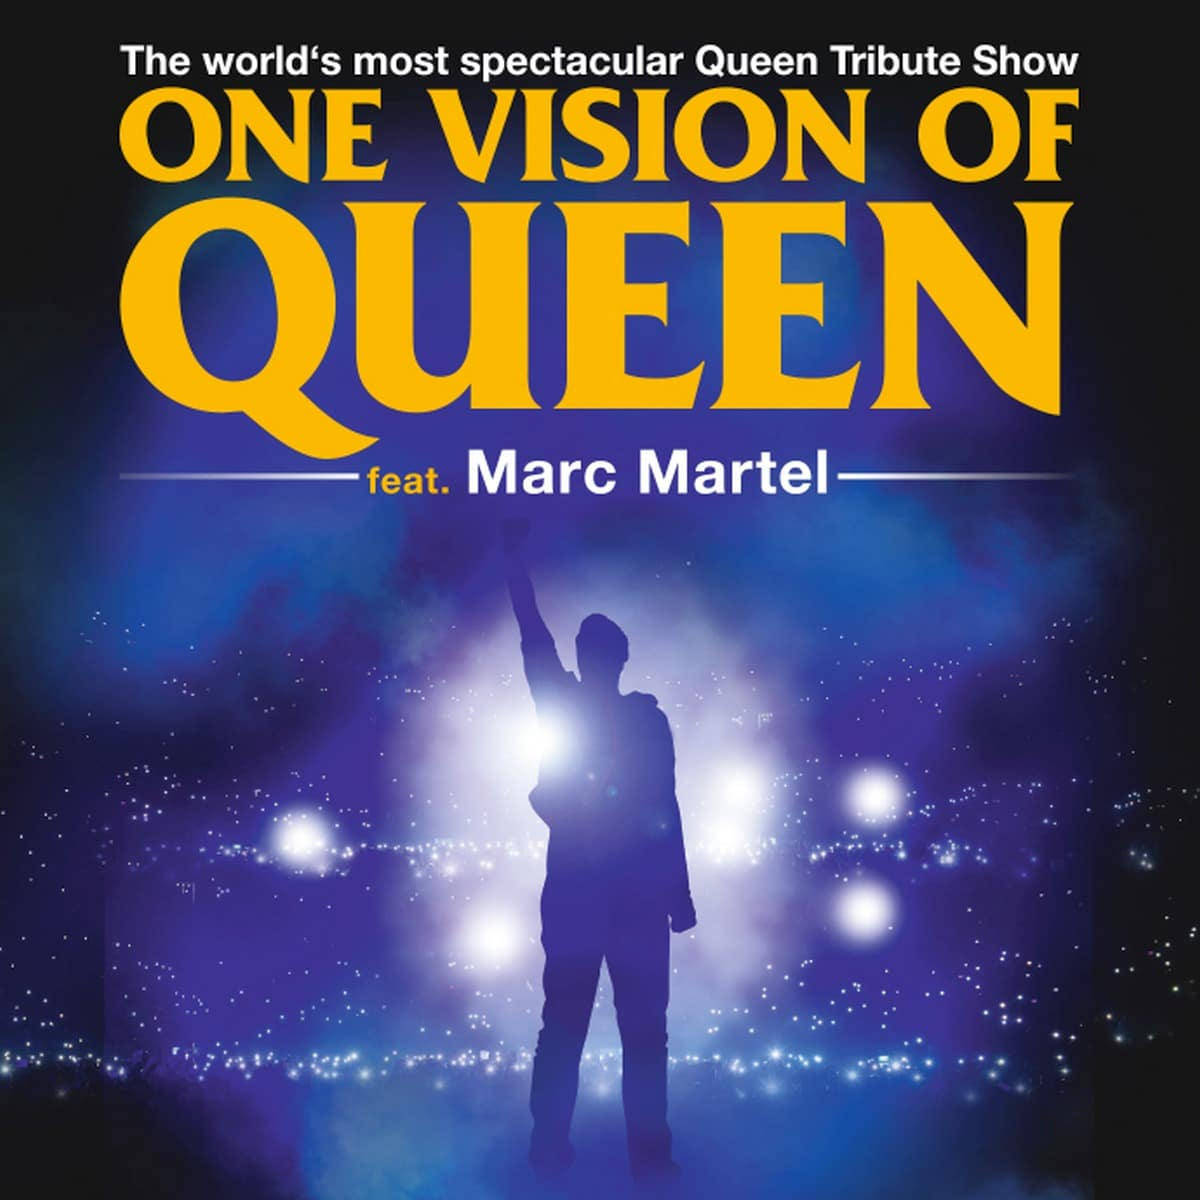 One Vision of Queen – Feat. Marc Martel